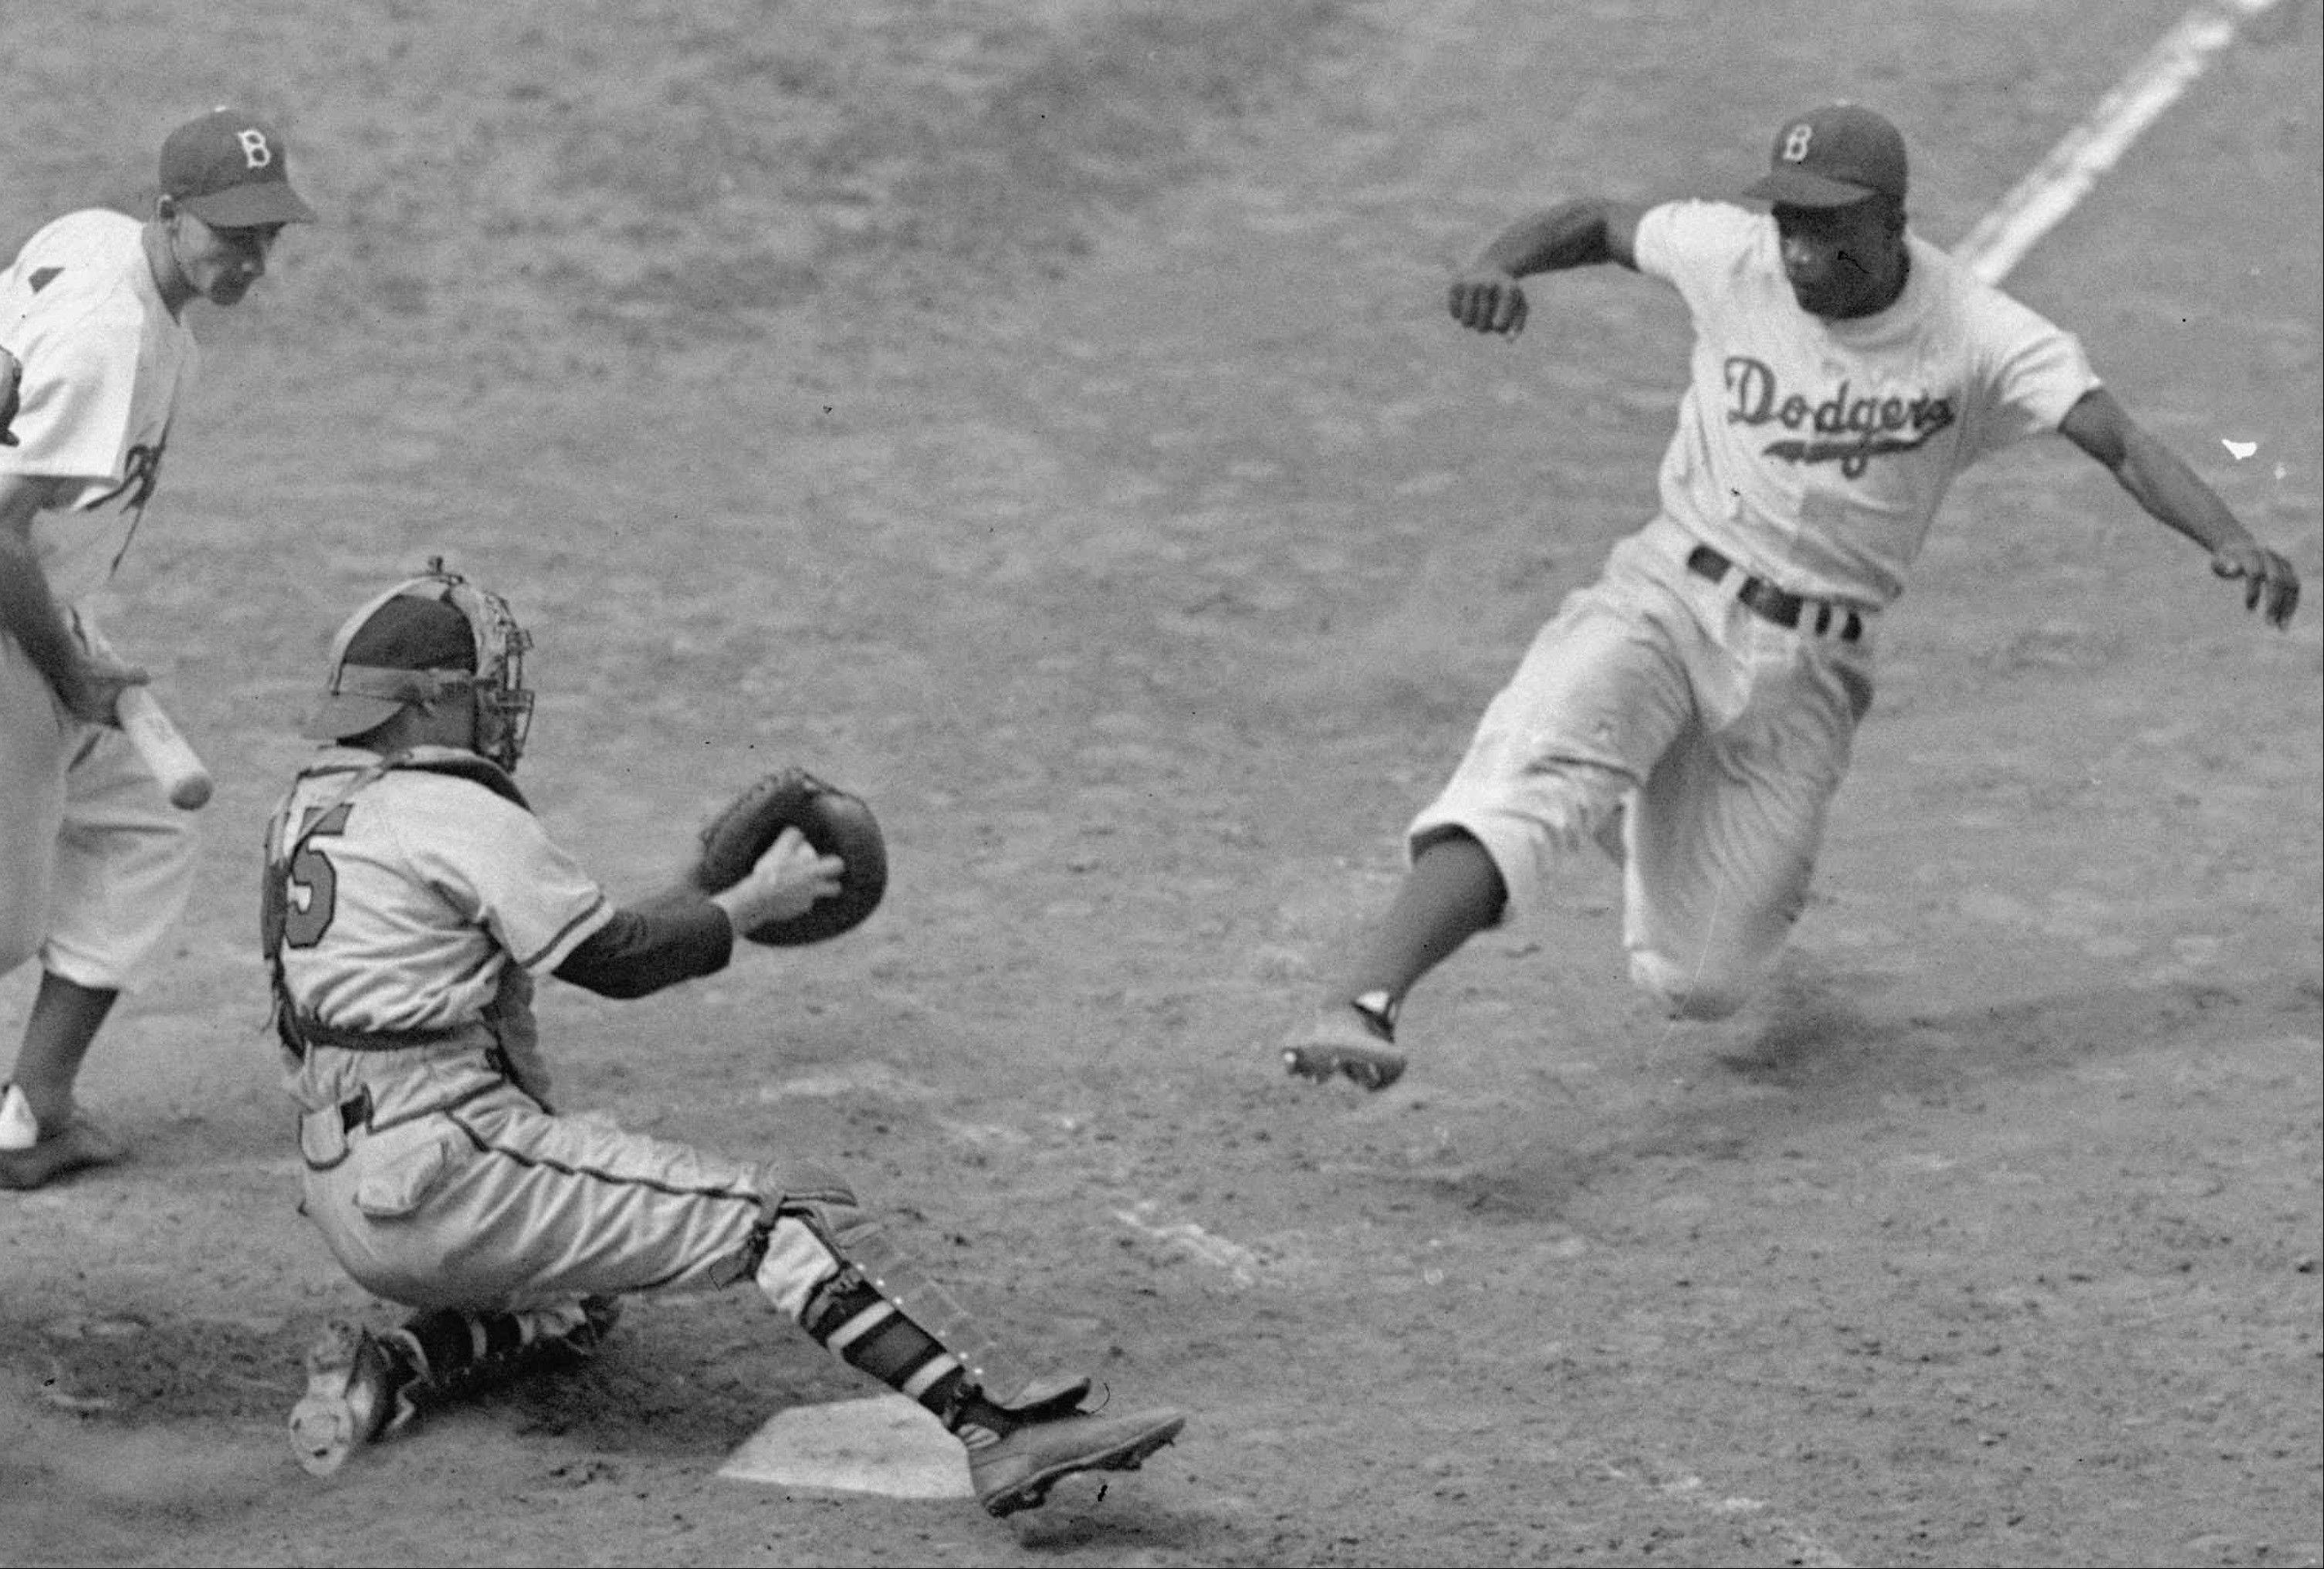 A 1948 file photo shows Brooklyn Dodgers Jackie Robinson, right, stealing home plate as Boston Braves' catcher Bill Salkeld is thrown off-balance on the throw during the fifth inning at Ebbets Field in New York.